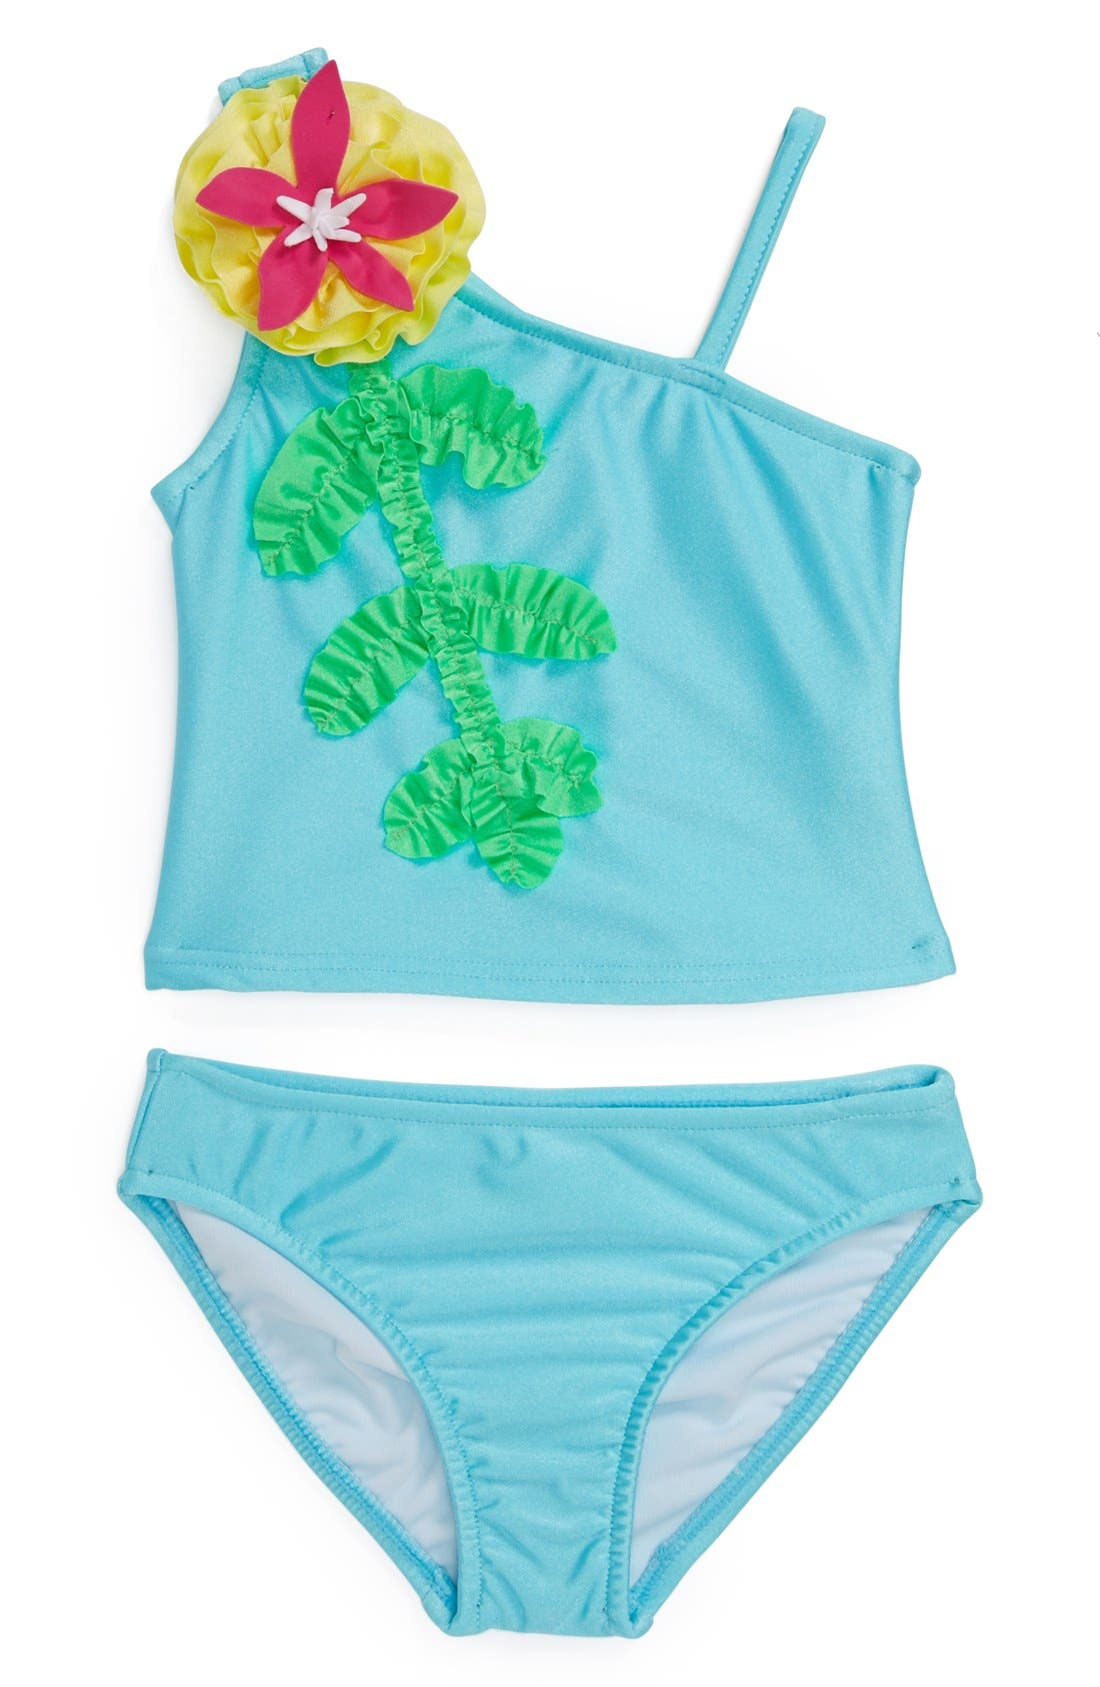 Alternate Image 1 Selected - Love U Lots 'Caribbean' Two-Piece Swimsuit (Baby Girls)